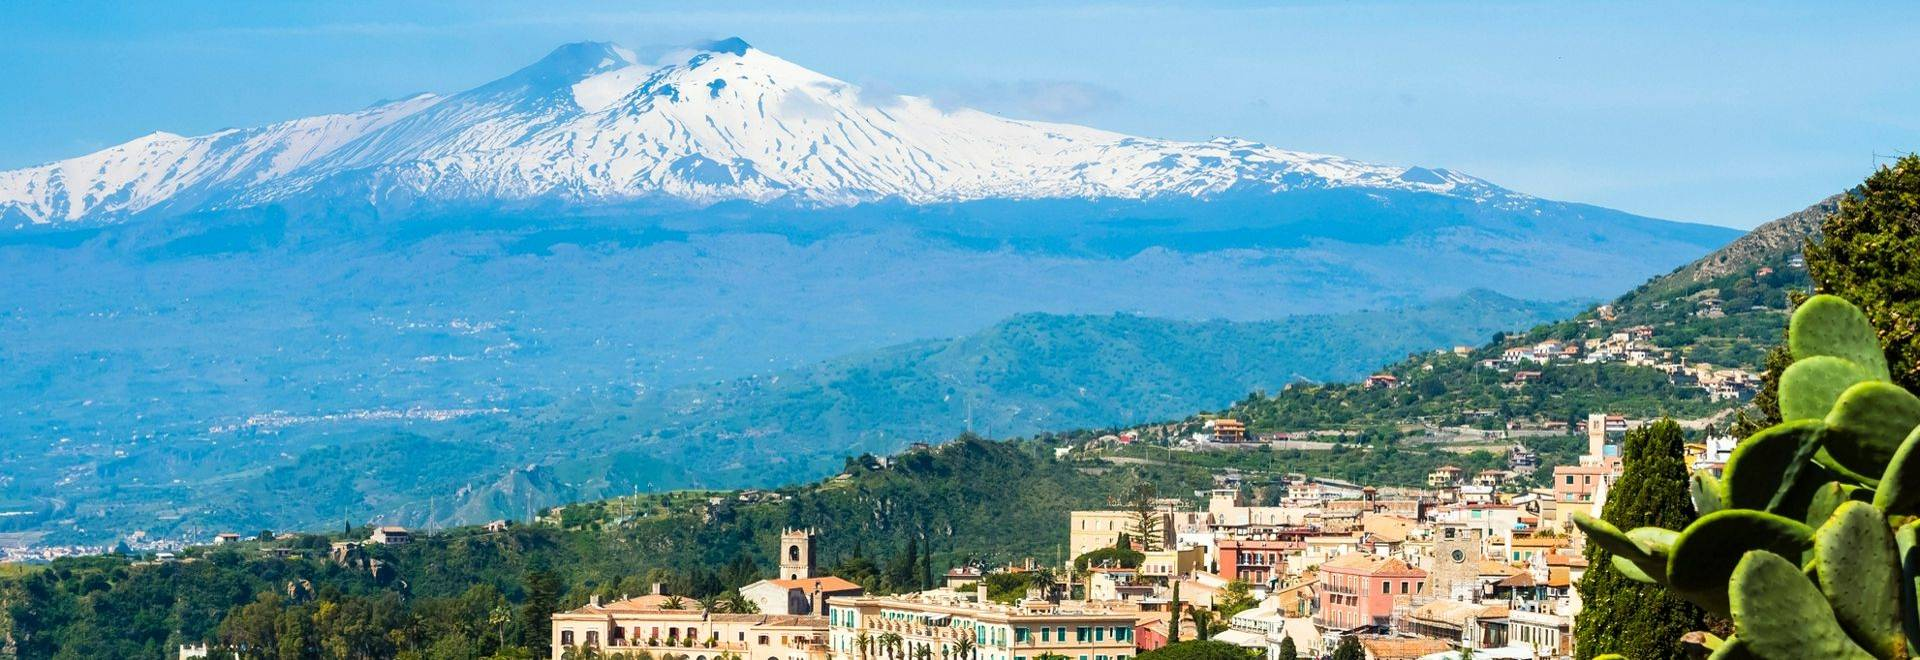 GettyImages 709126573 Taormina, View To The City From Above With Mount Etna In The Background   Copy (1)